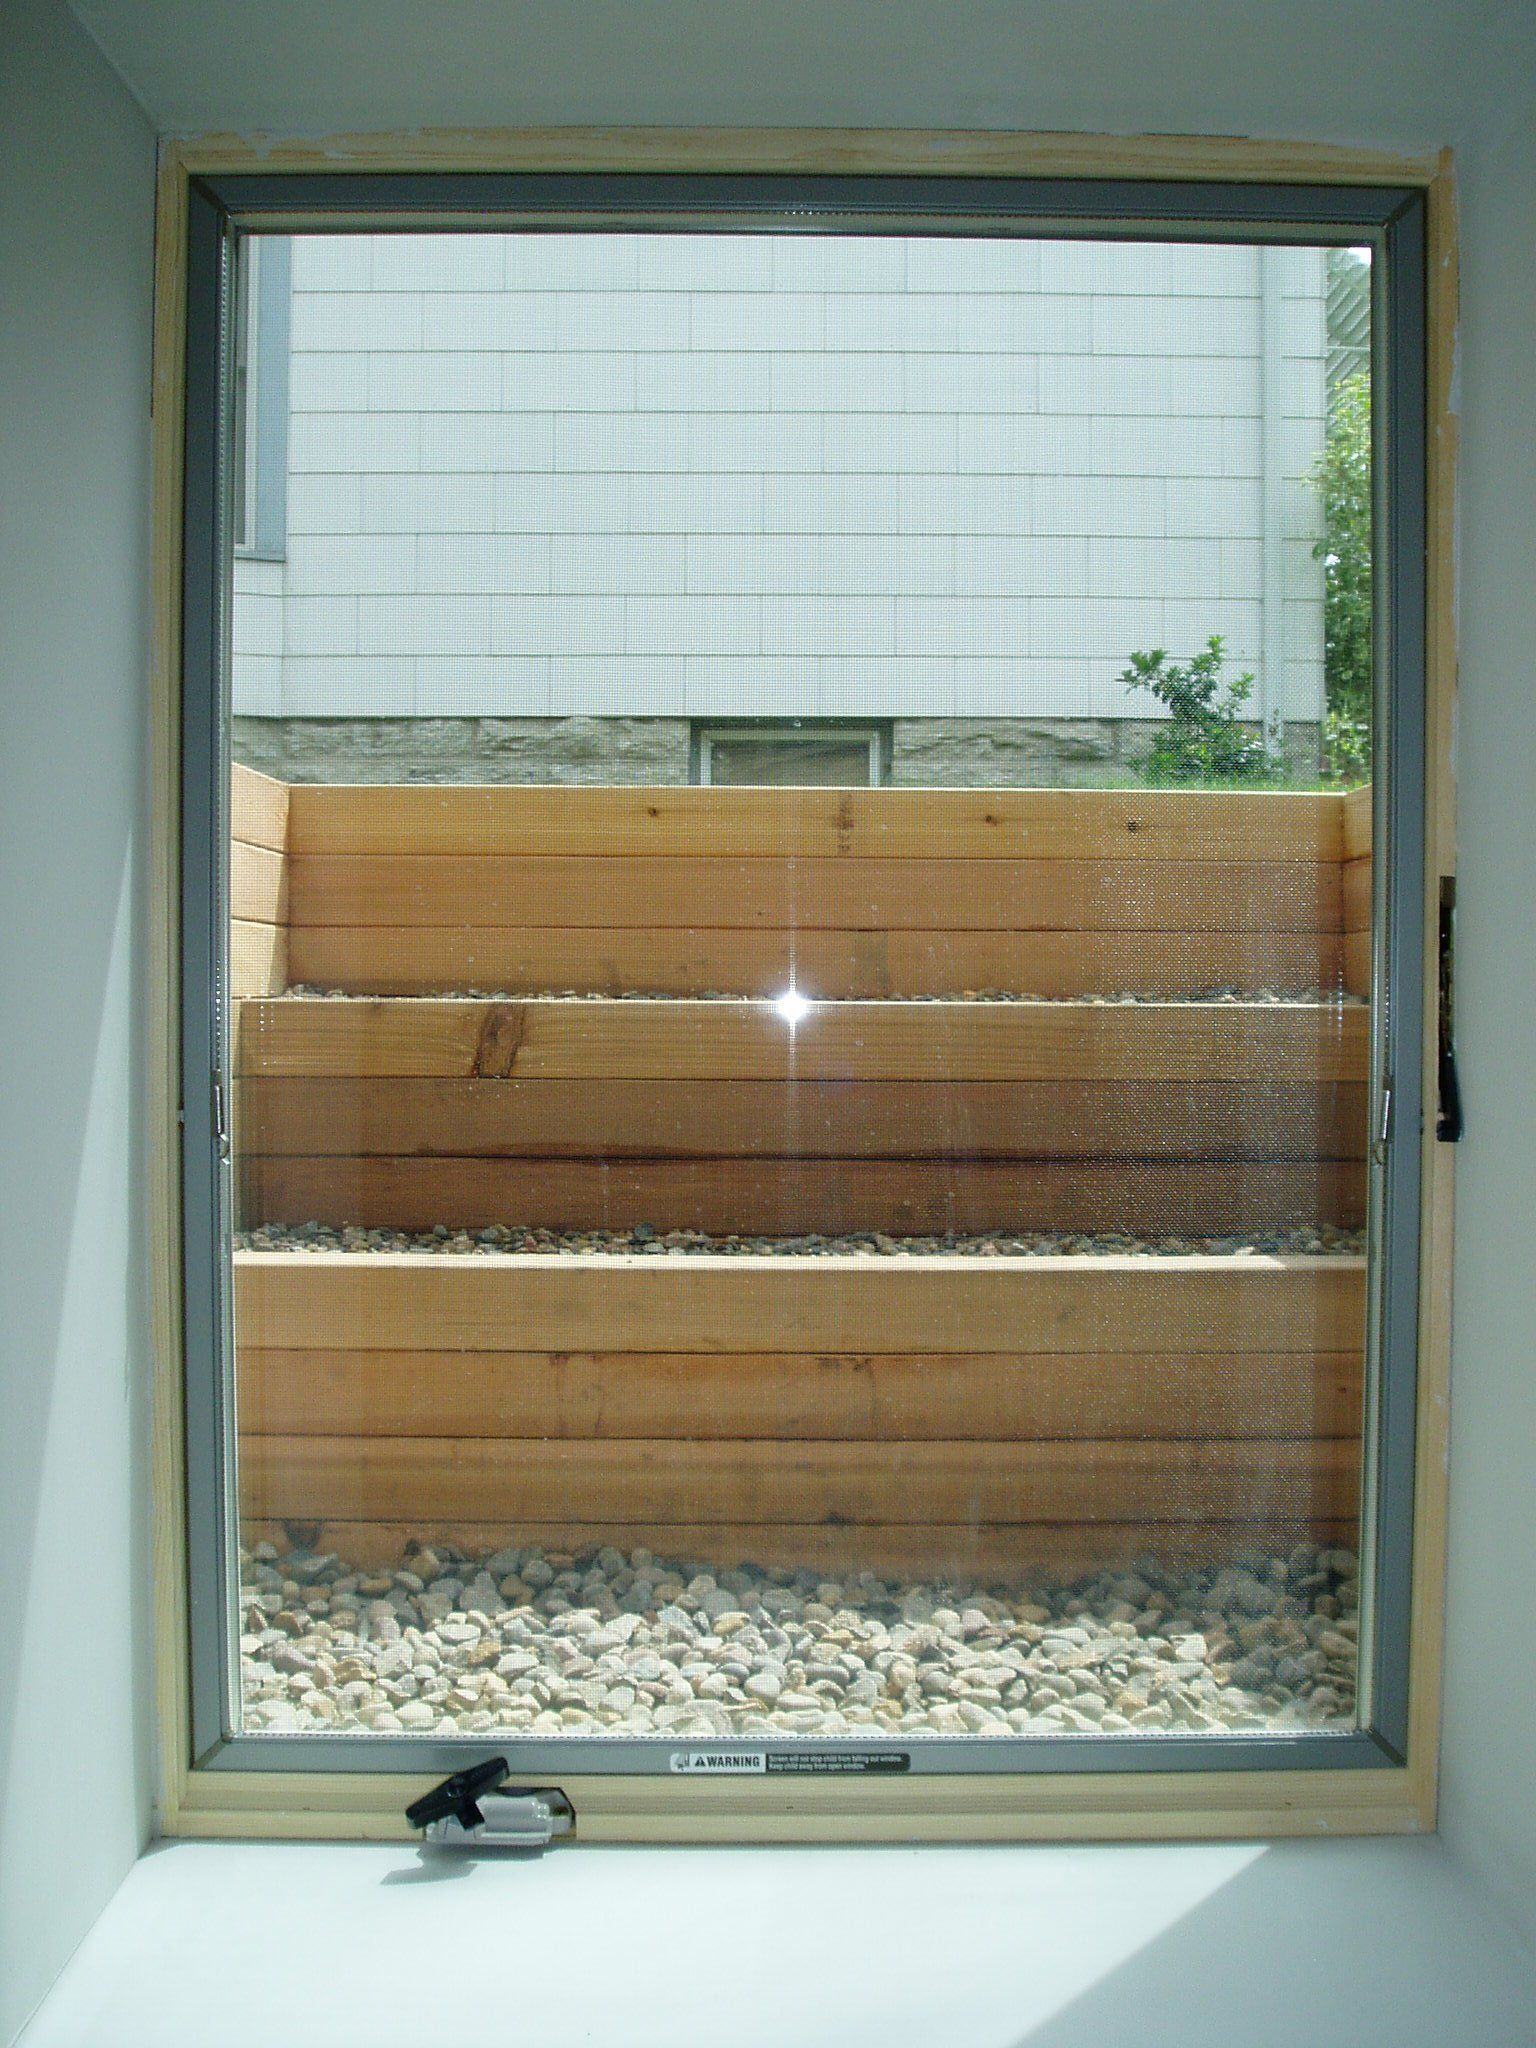 Egress window coverings  project gallery  brenne builders  french drain  pinterest